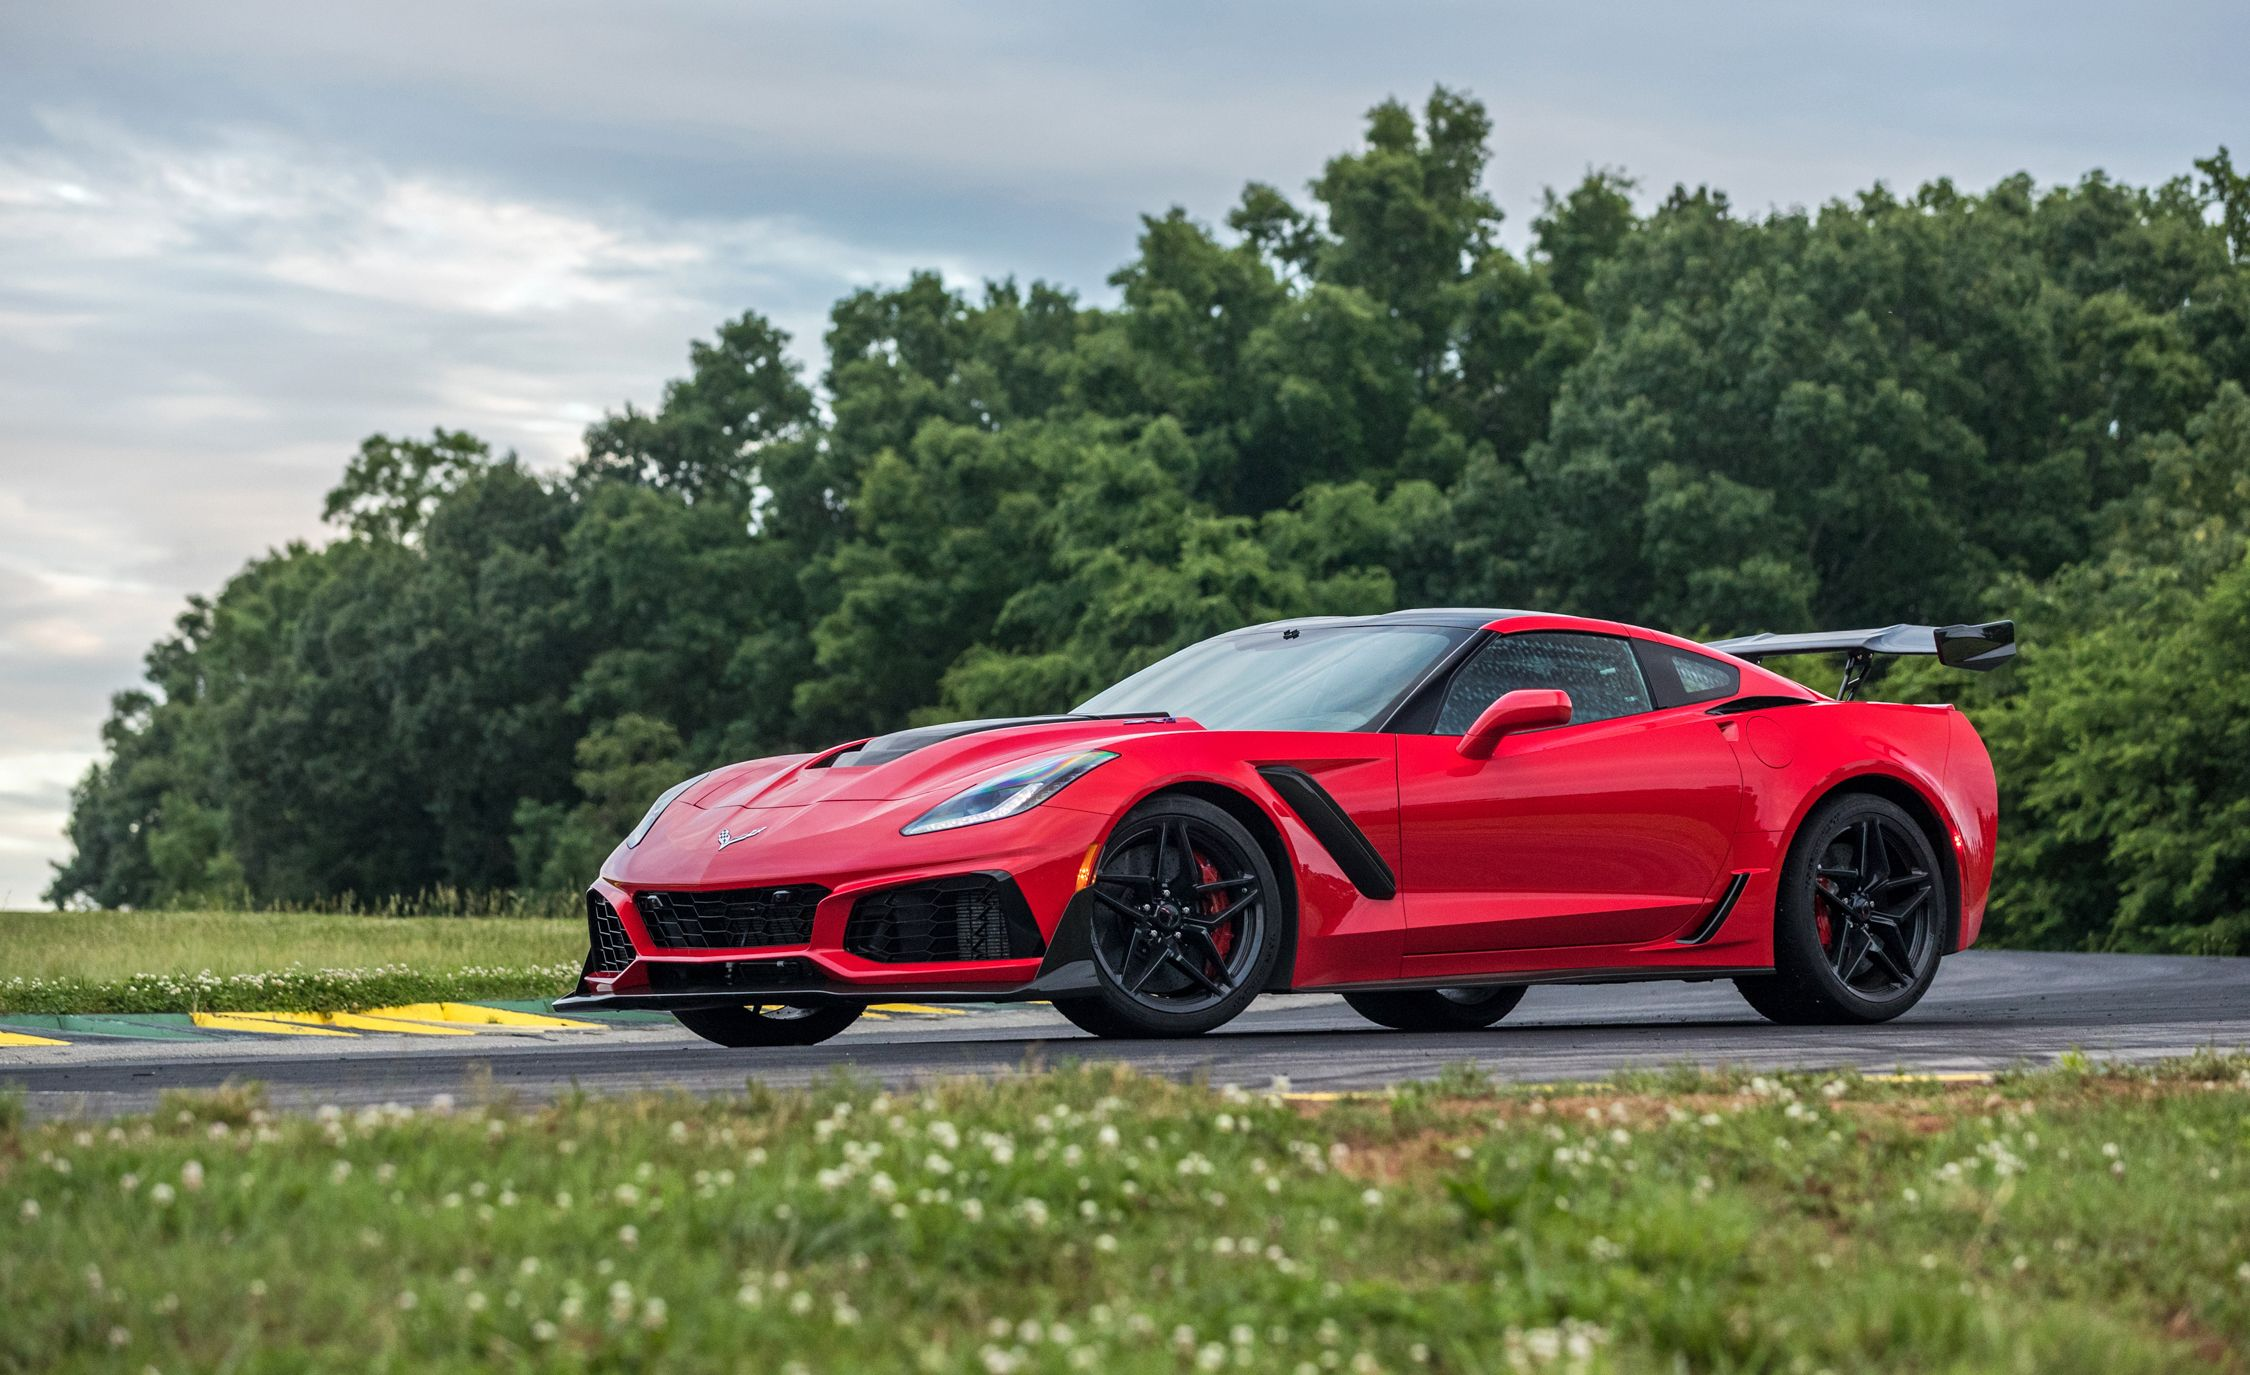 Chevrolet Corvette Zr1 Features And Specs